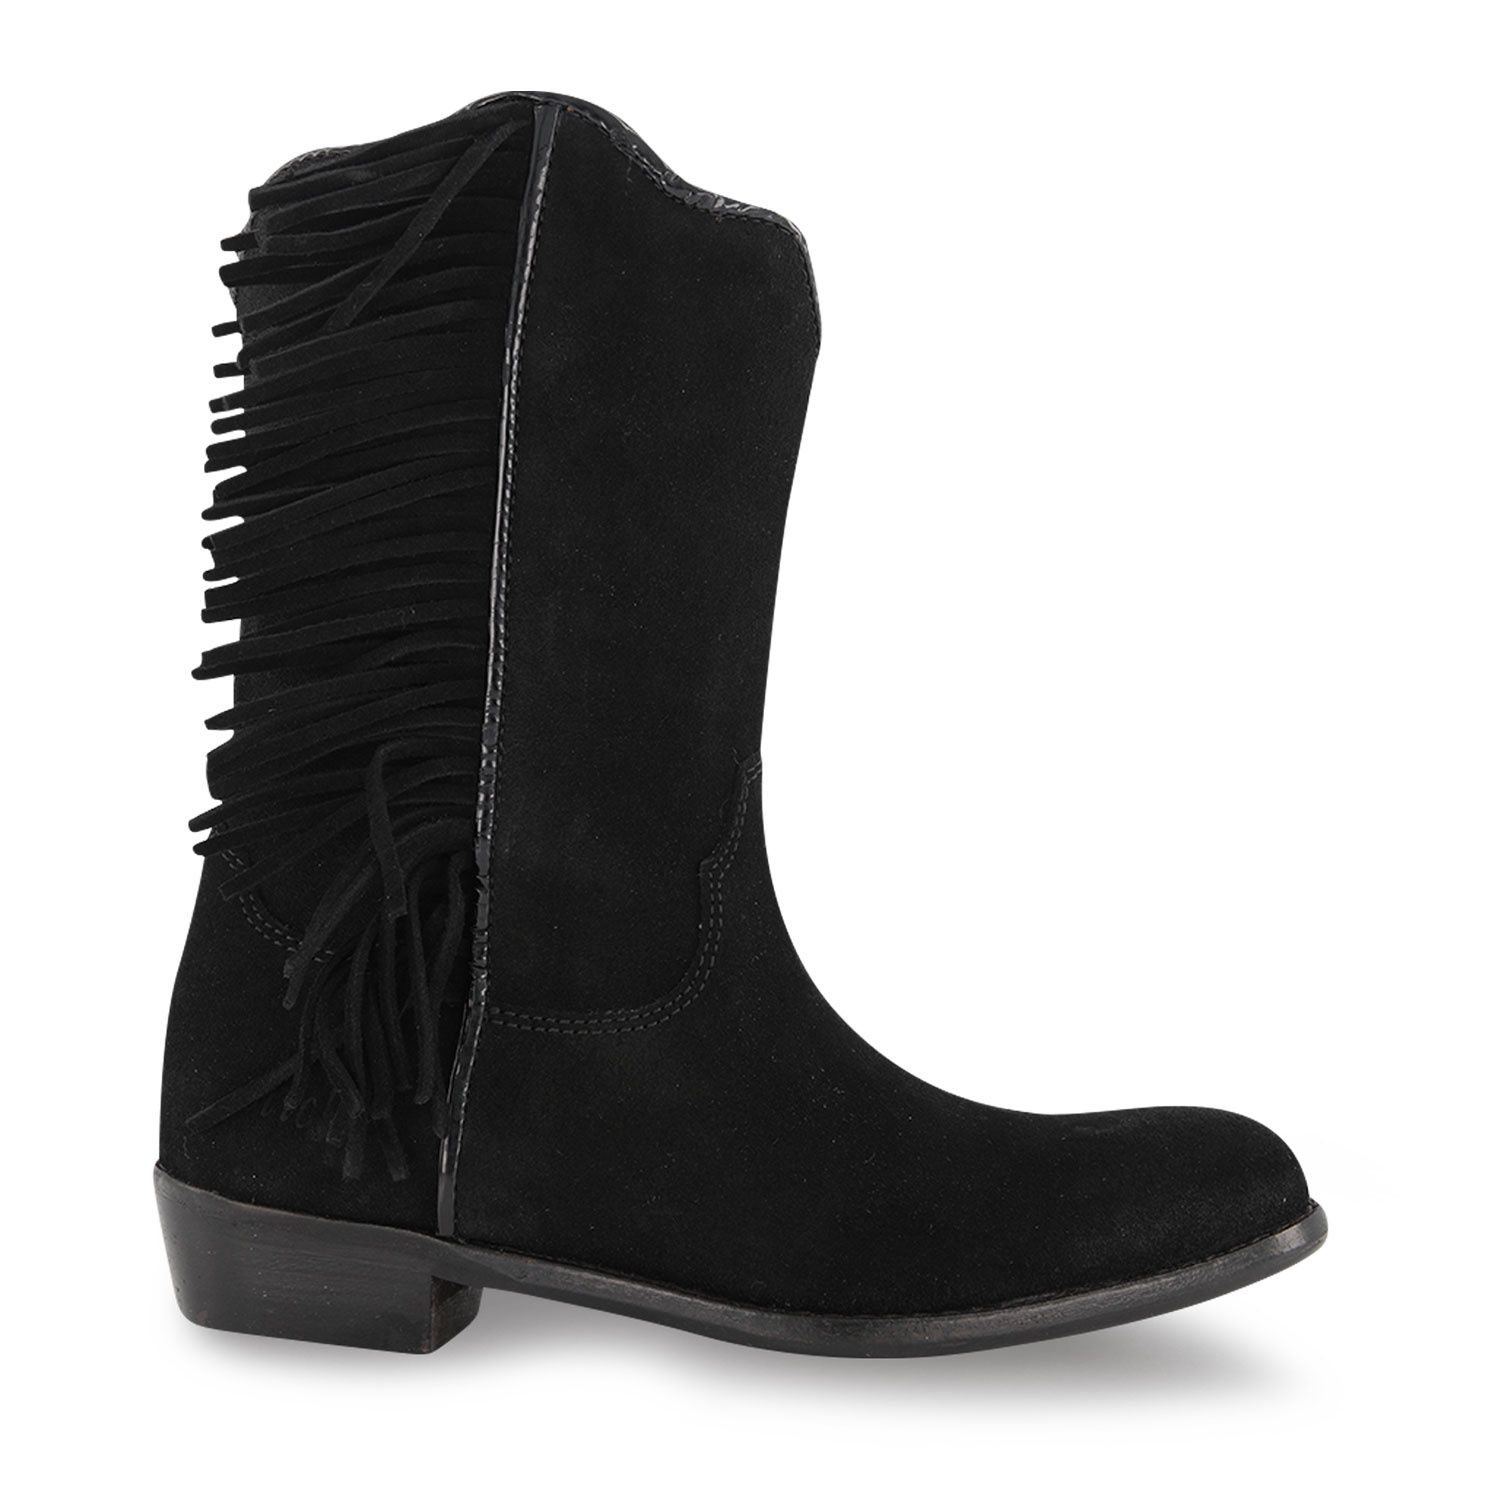 Picture of Clic 20256 kids boots black